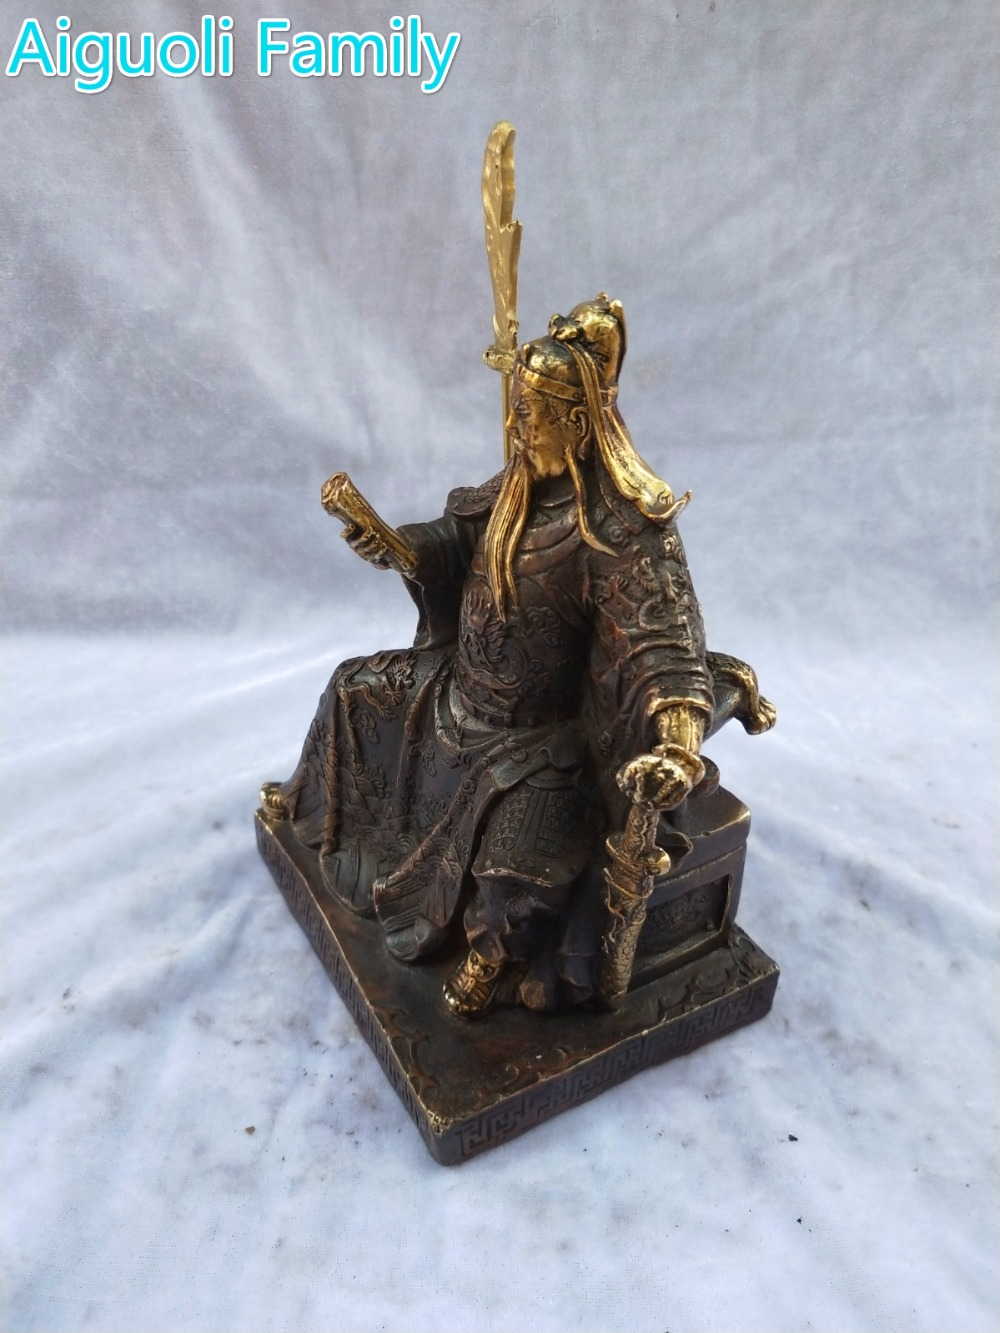 Home Decoration Sculpture/Art Collection Metal Crafts,Chinese Old Bronze Gilt Gugong Statue Home Decoration Sculpture/Art Collection Metal Crafts,Chinese Old Bronze Gilt Gugong Statue